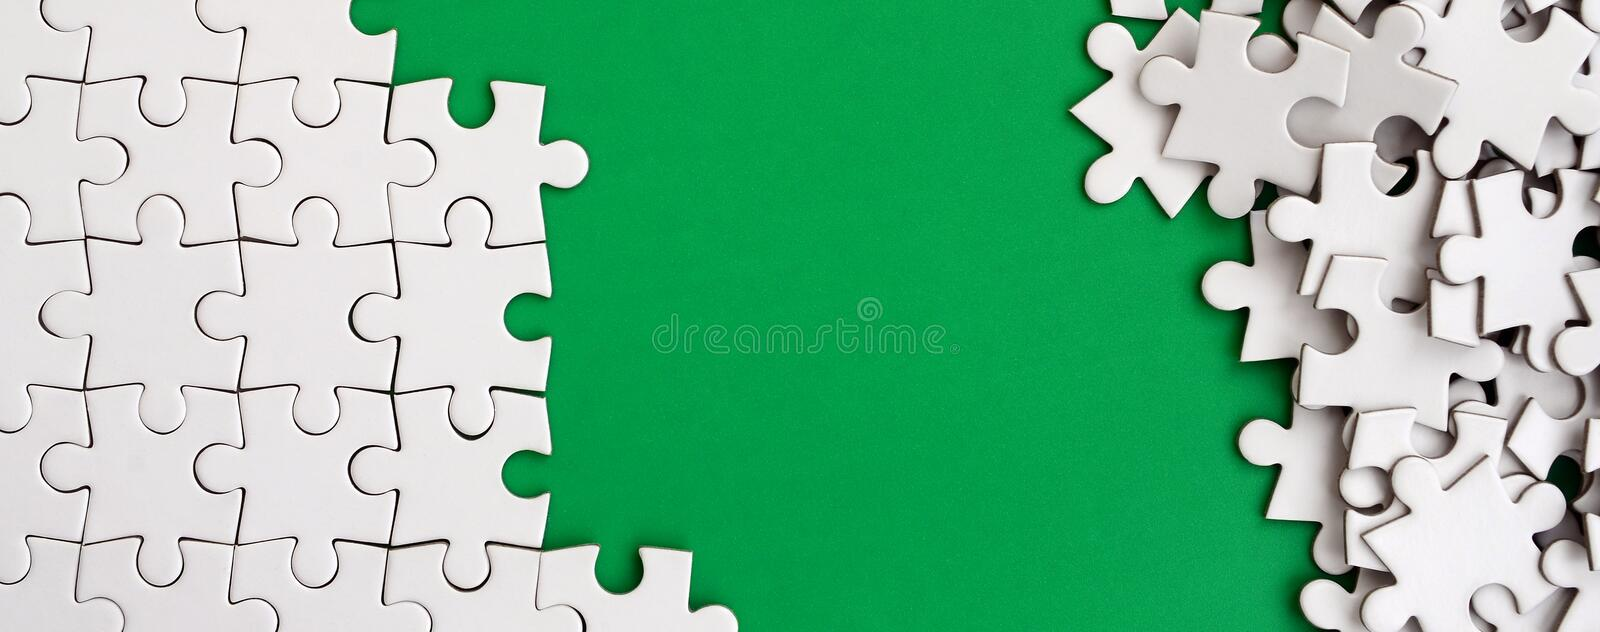 Fragment of a folded white jigsaw puzzle and a pile of uncombed puzzle elements against the background of a green surface. Texture. Photo with space for text royalty free stock image